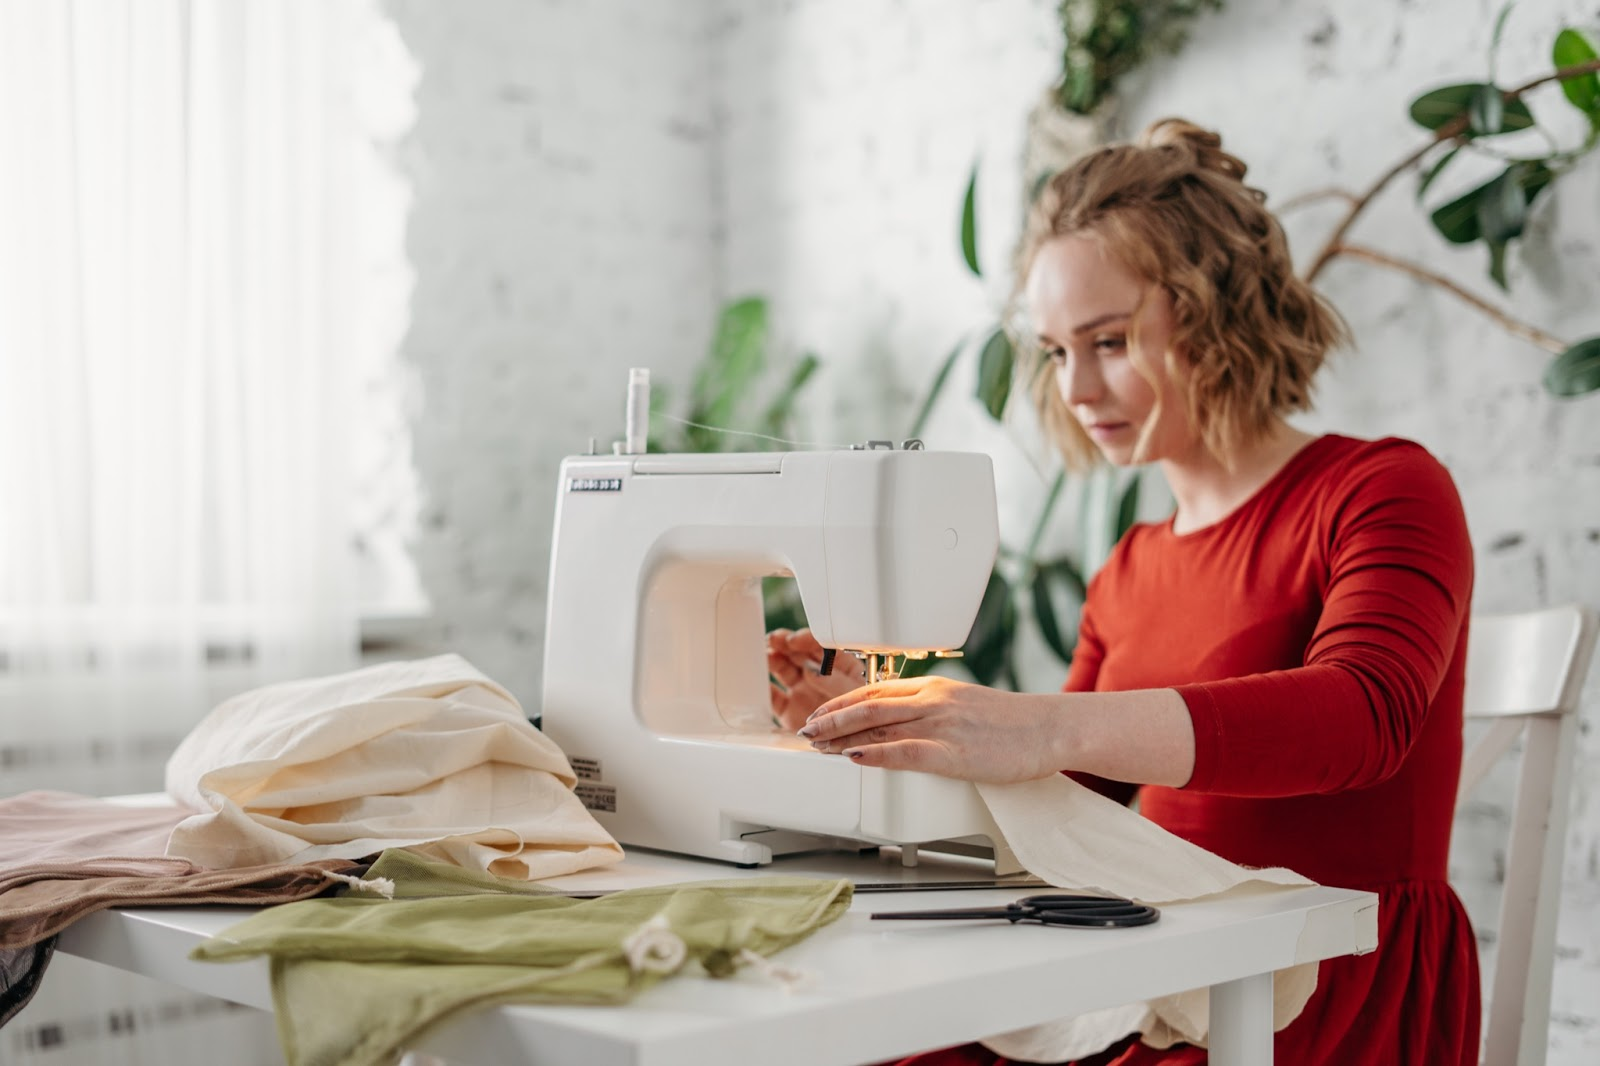 Starting a Clothing Business: 4-Step Plan for 2021